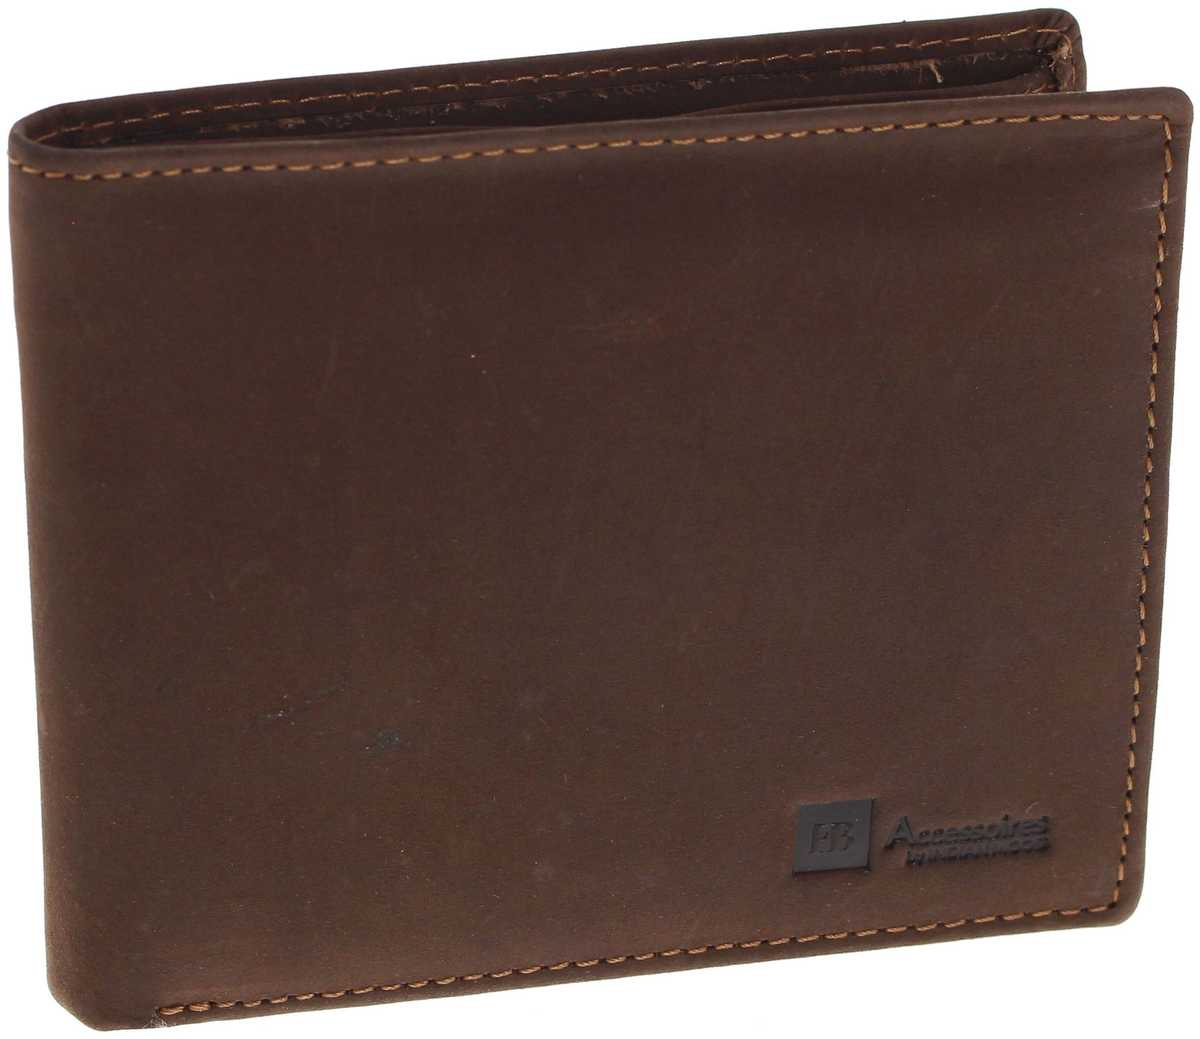 Fashion Boots FB Wallets 2013 Wallet Brown purse